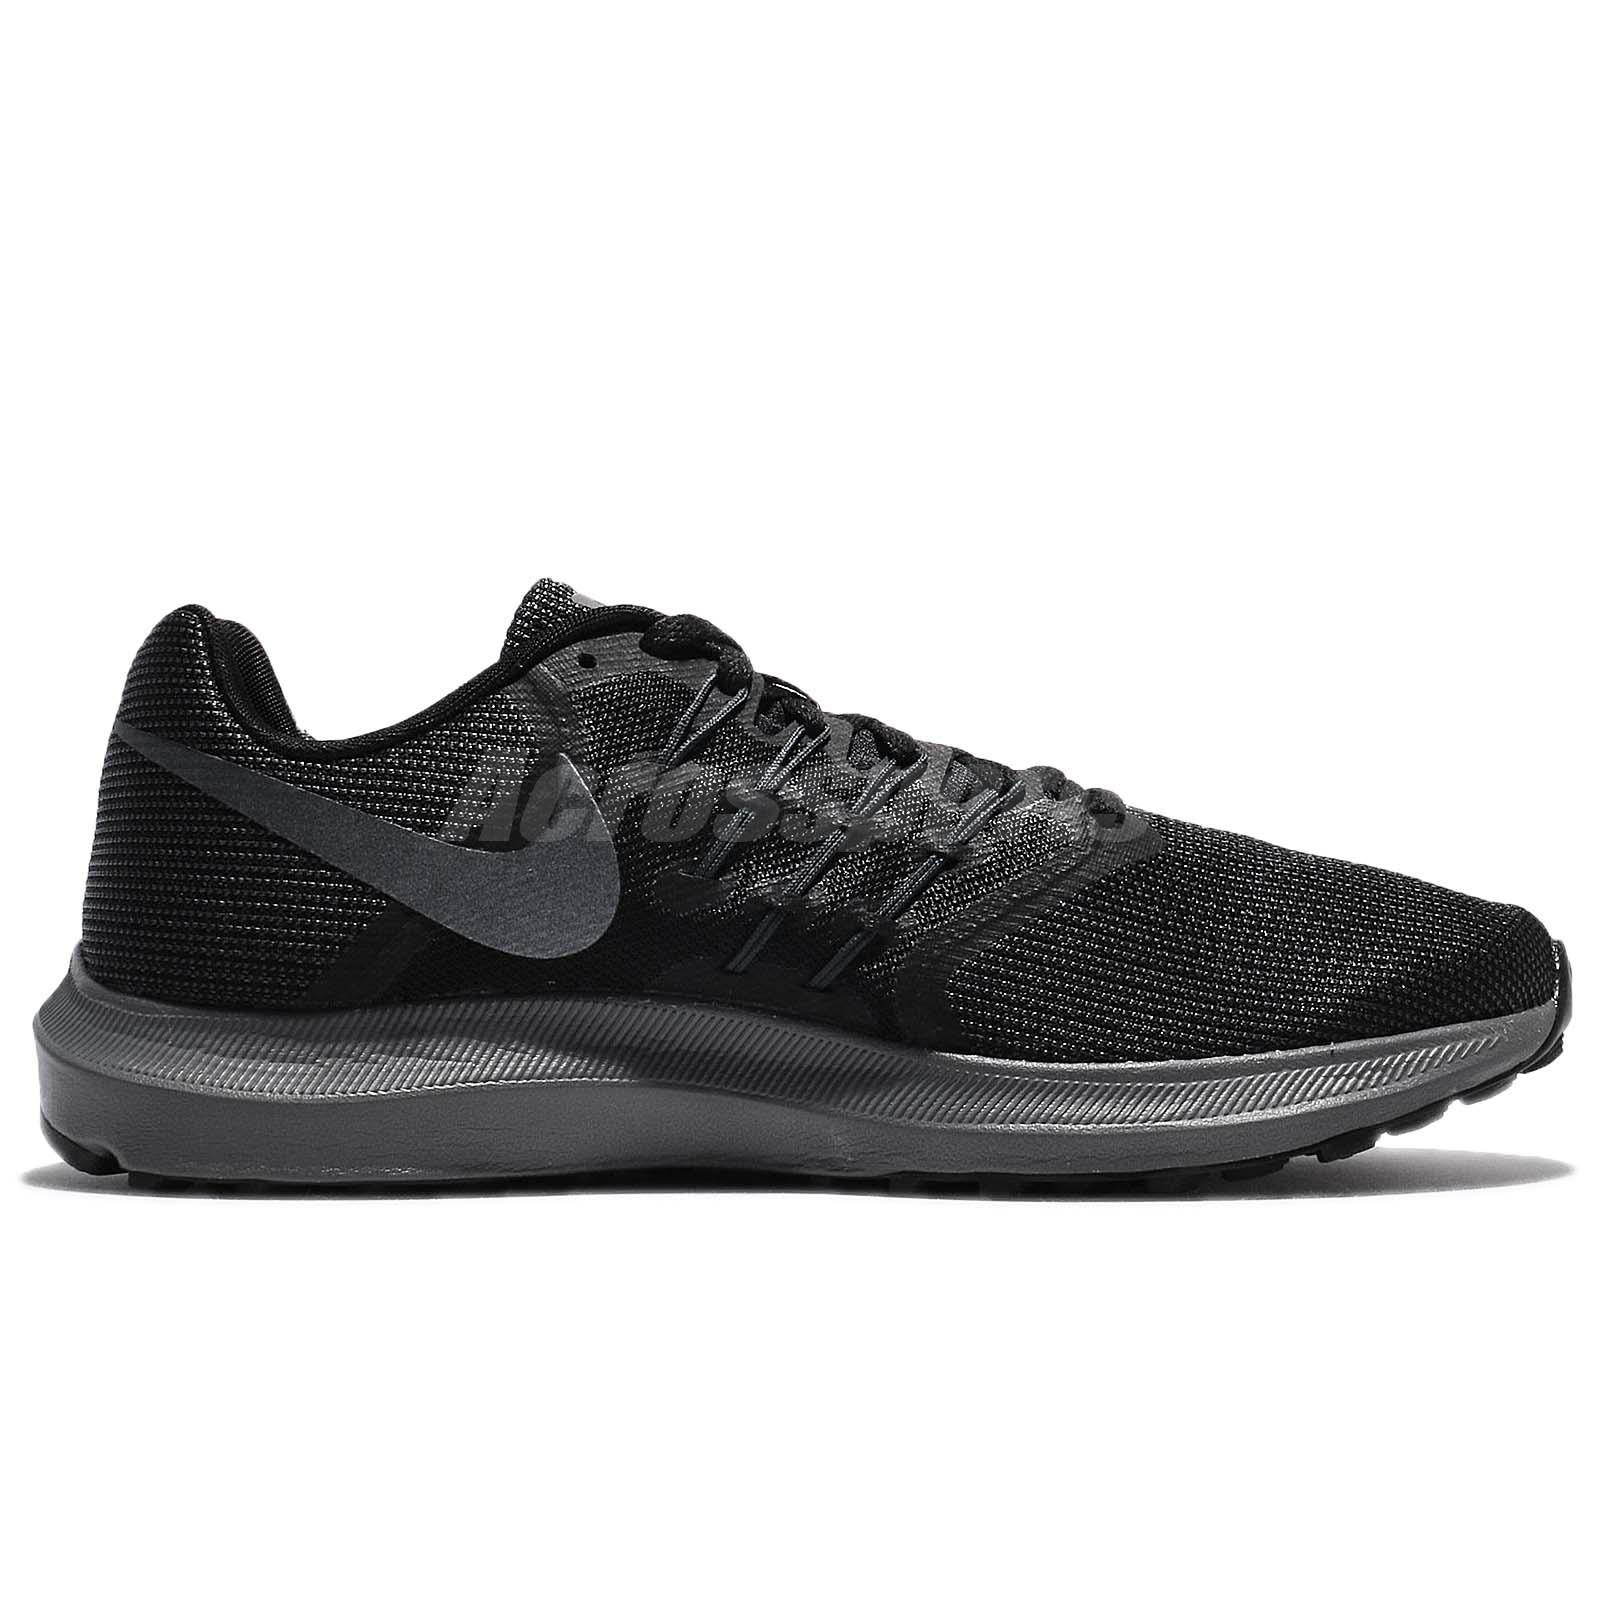 Find Black Nikes at Famous Footwear. Free Shipping on orders over $75!